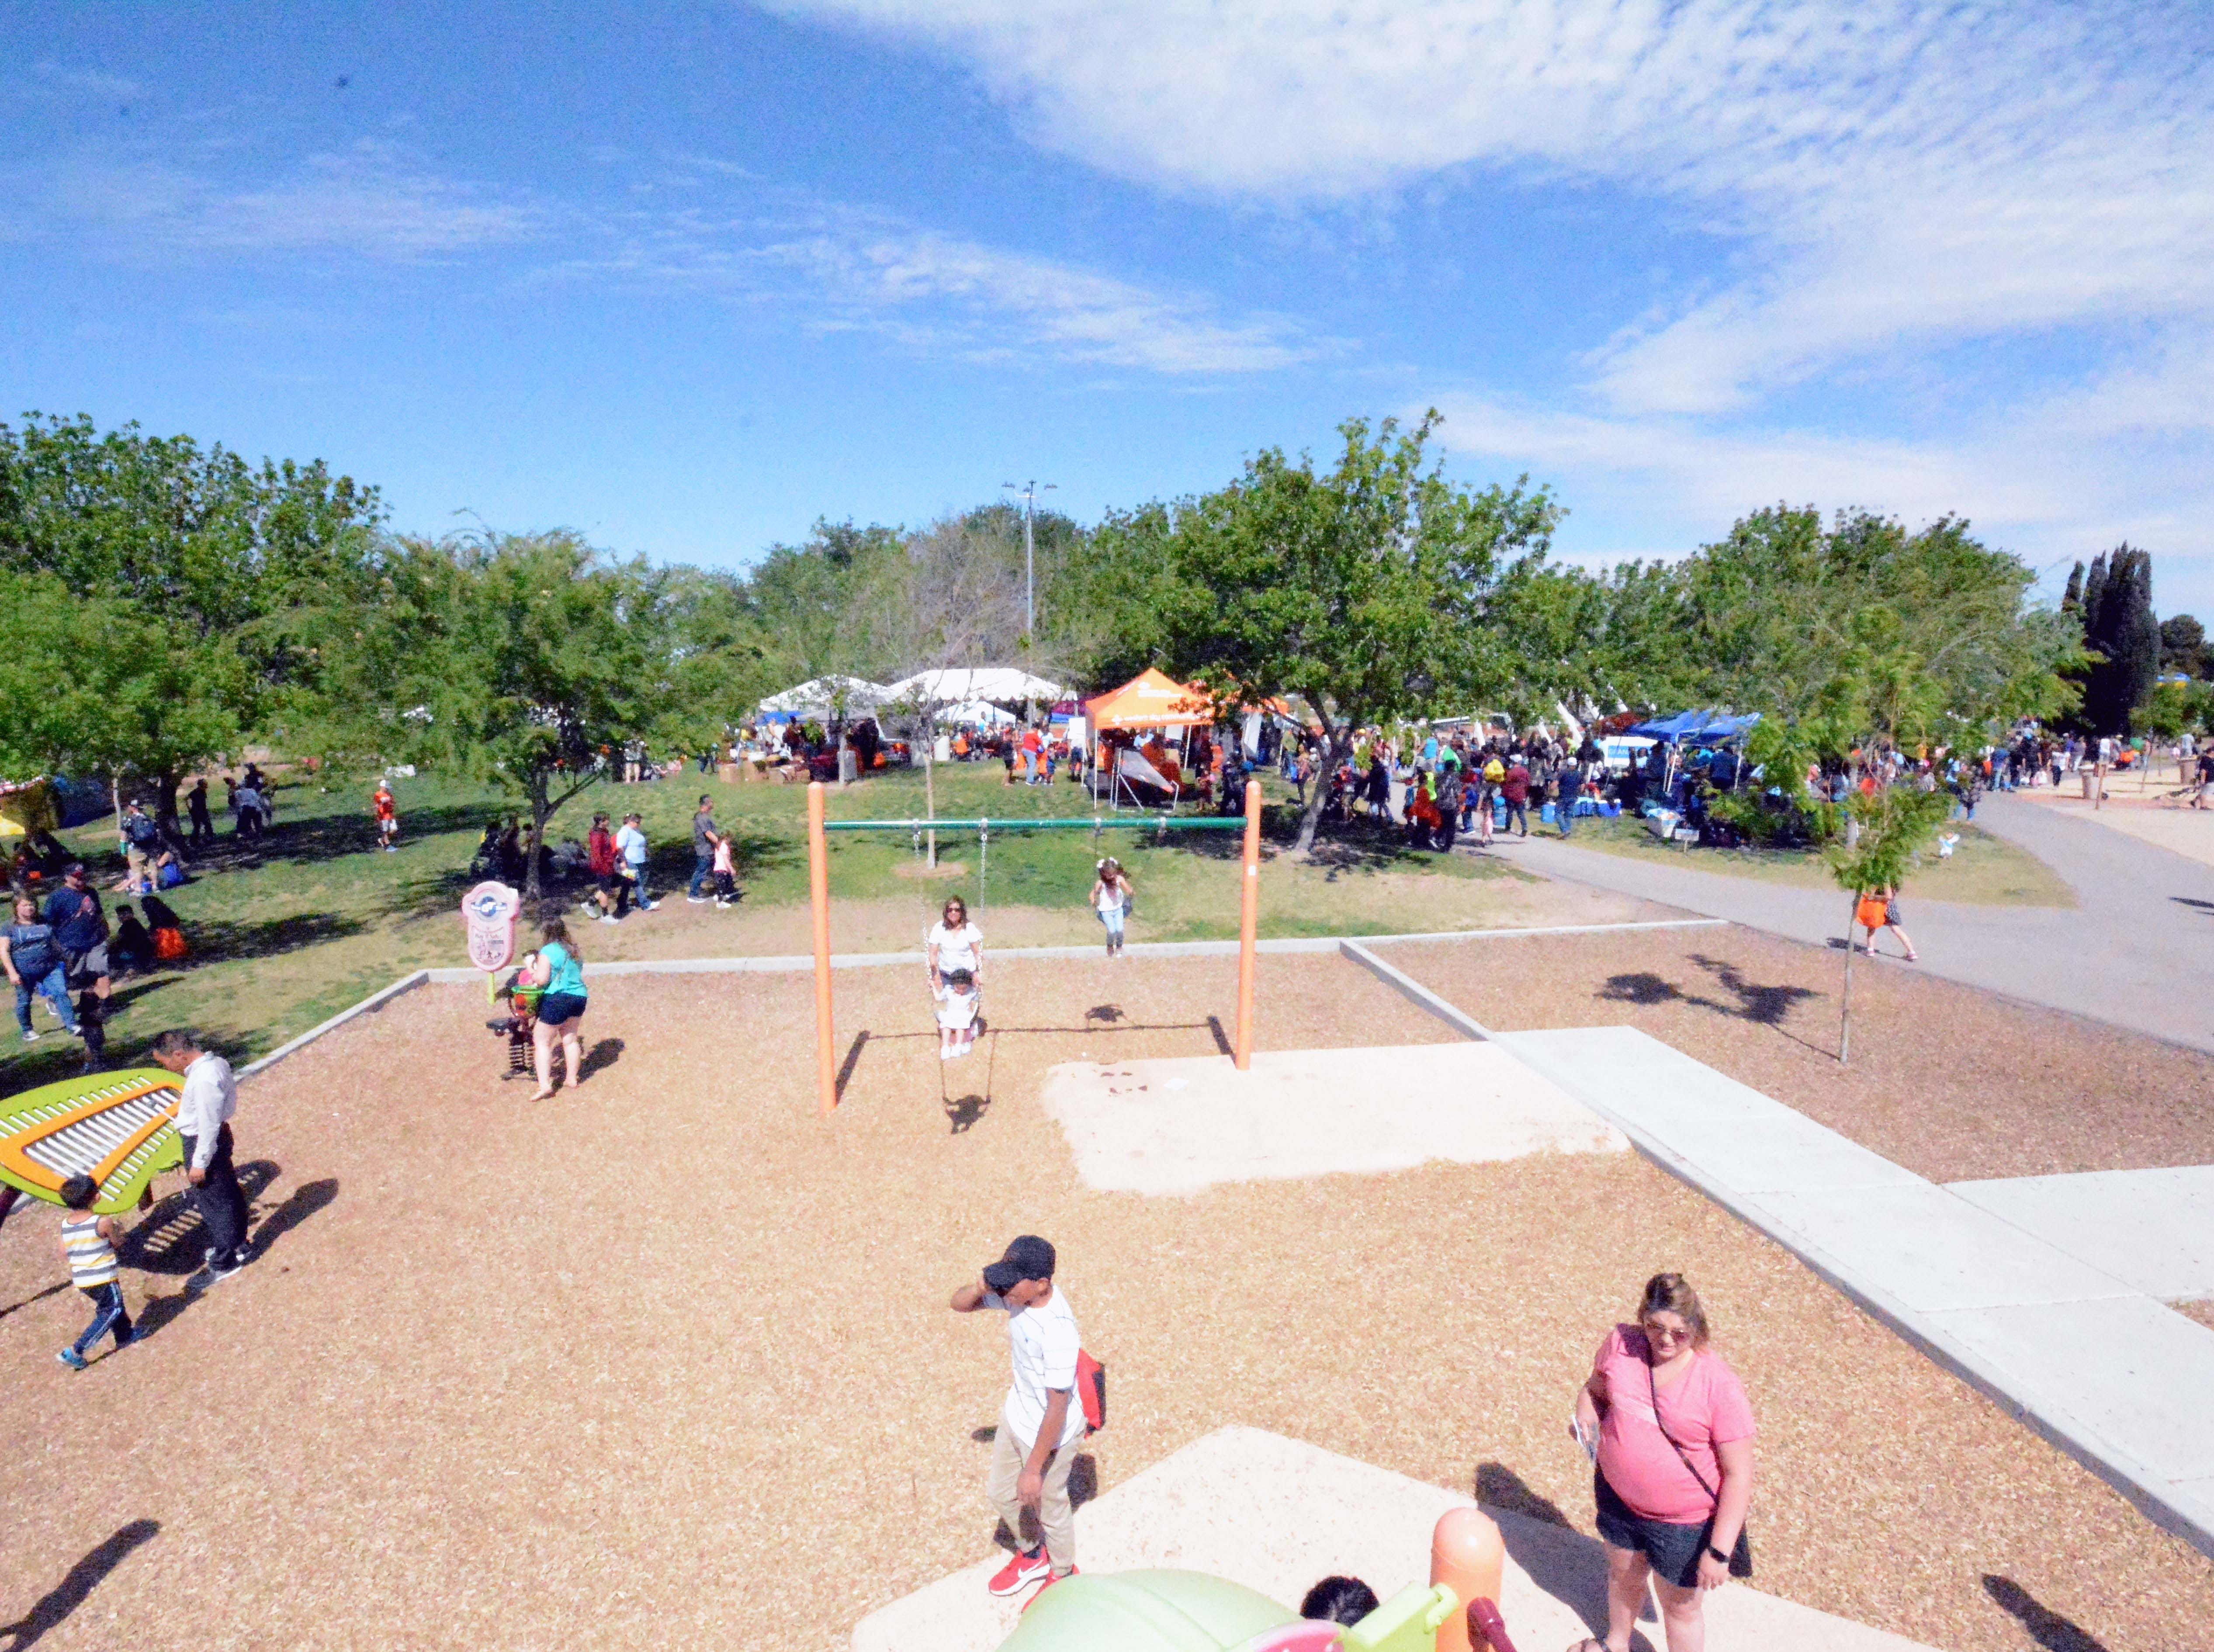 The weather cooperated this year for this year's SpringFest at Young Park on Saturday, April 20, 2019.